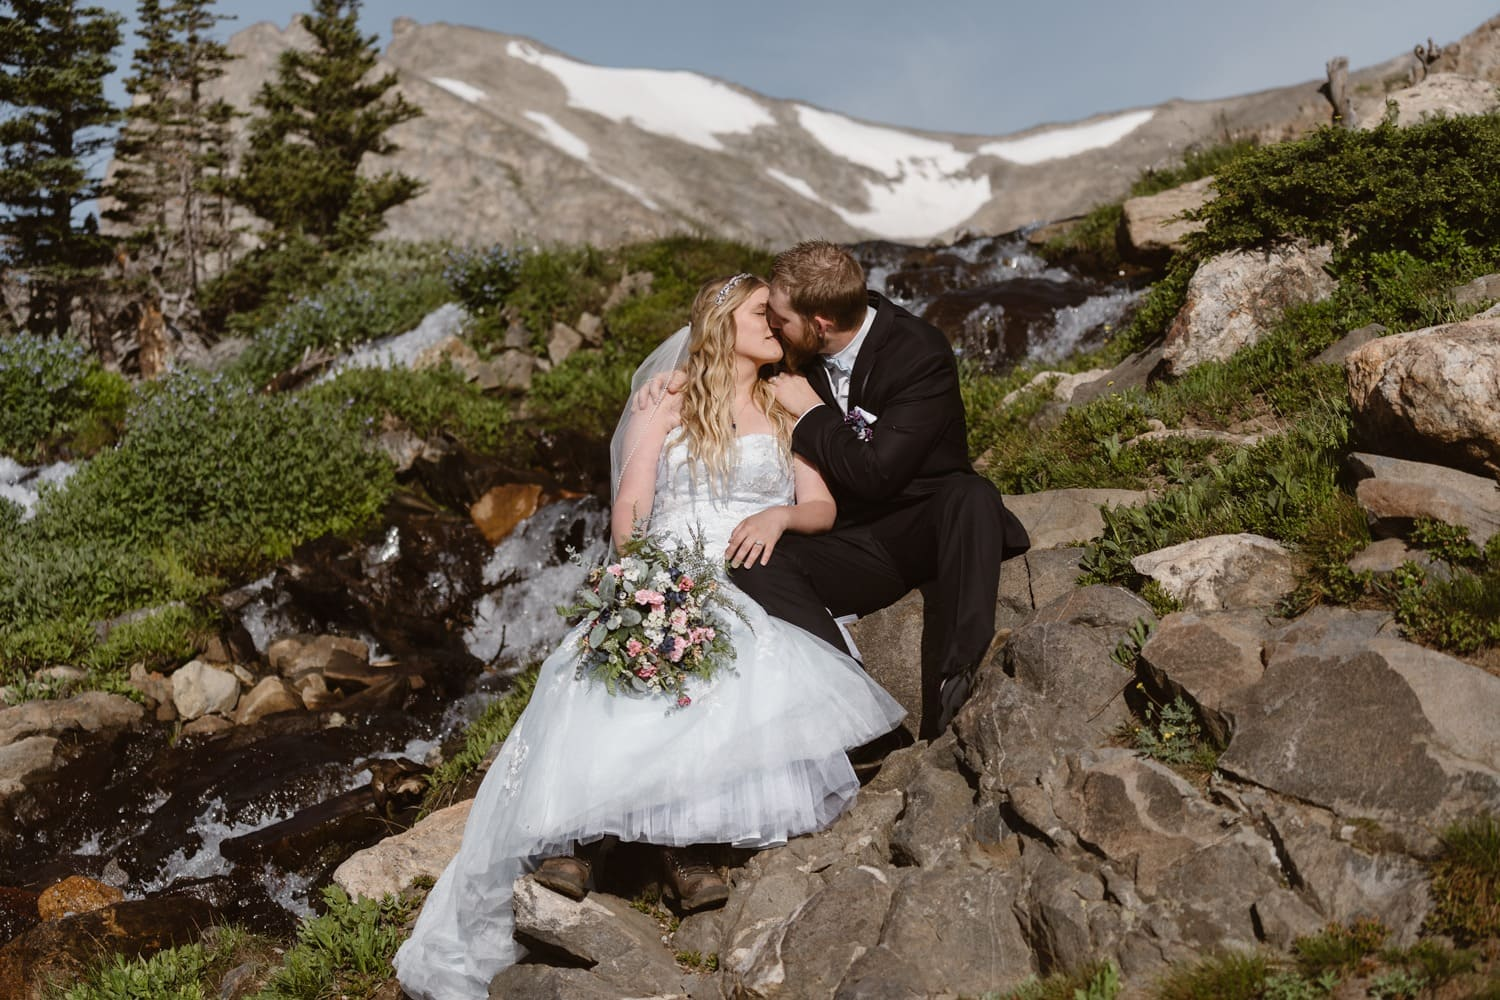 Bride and Groom Kissing Near Waterfall at Colorado Adventure Elopement